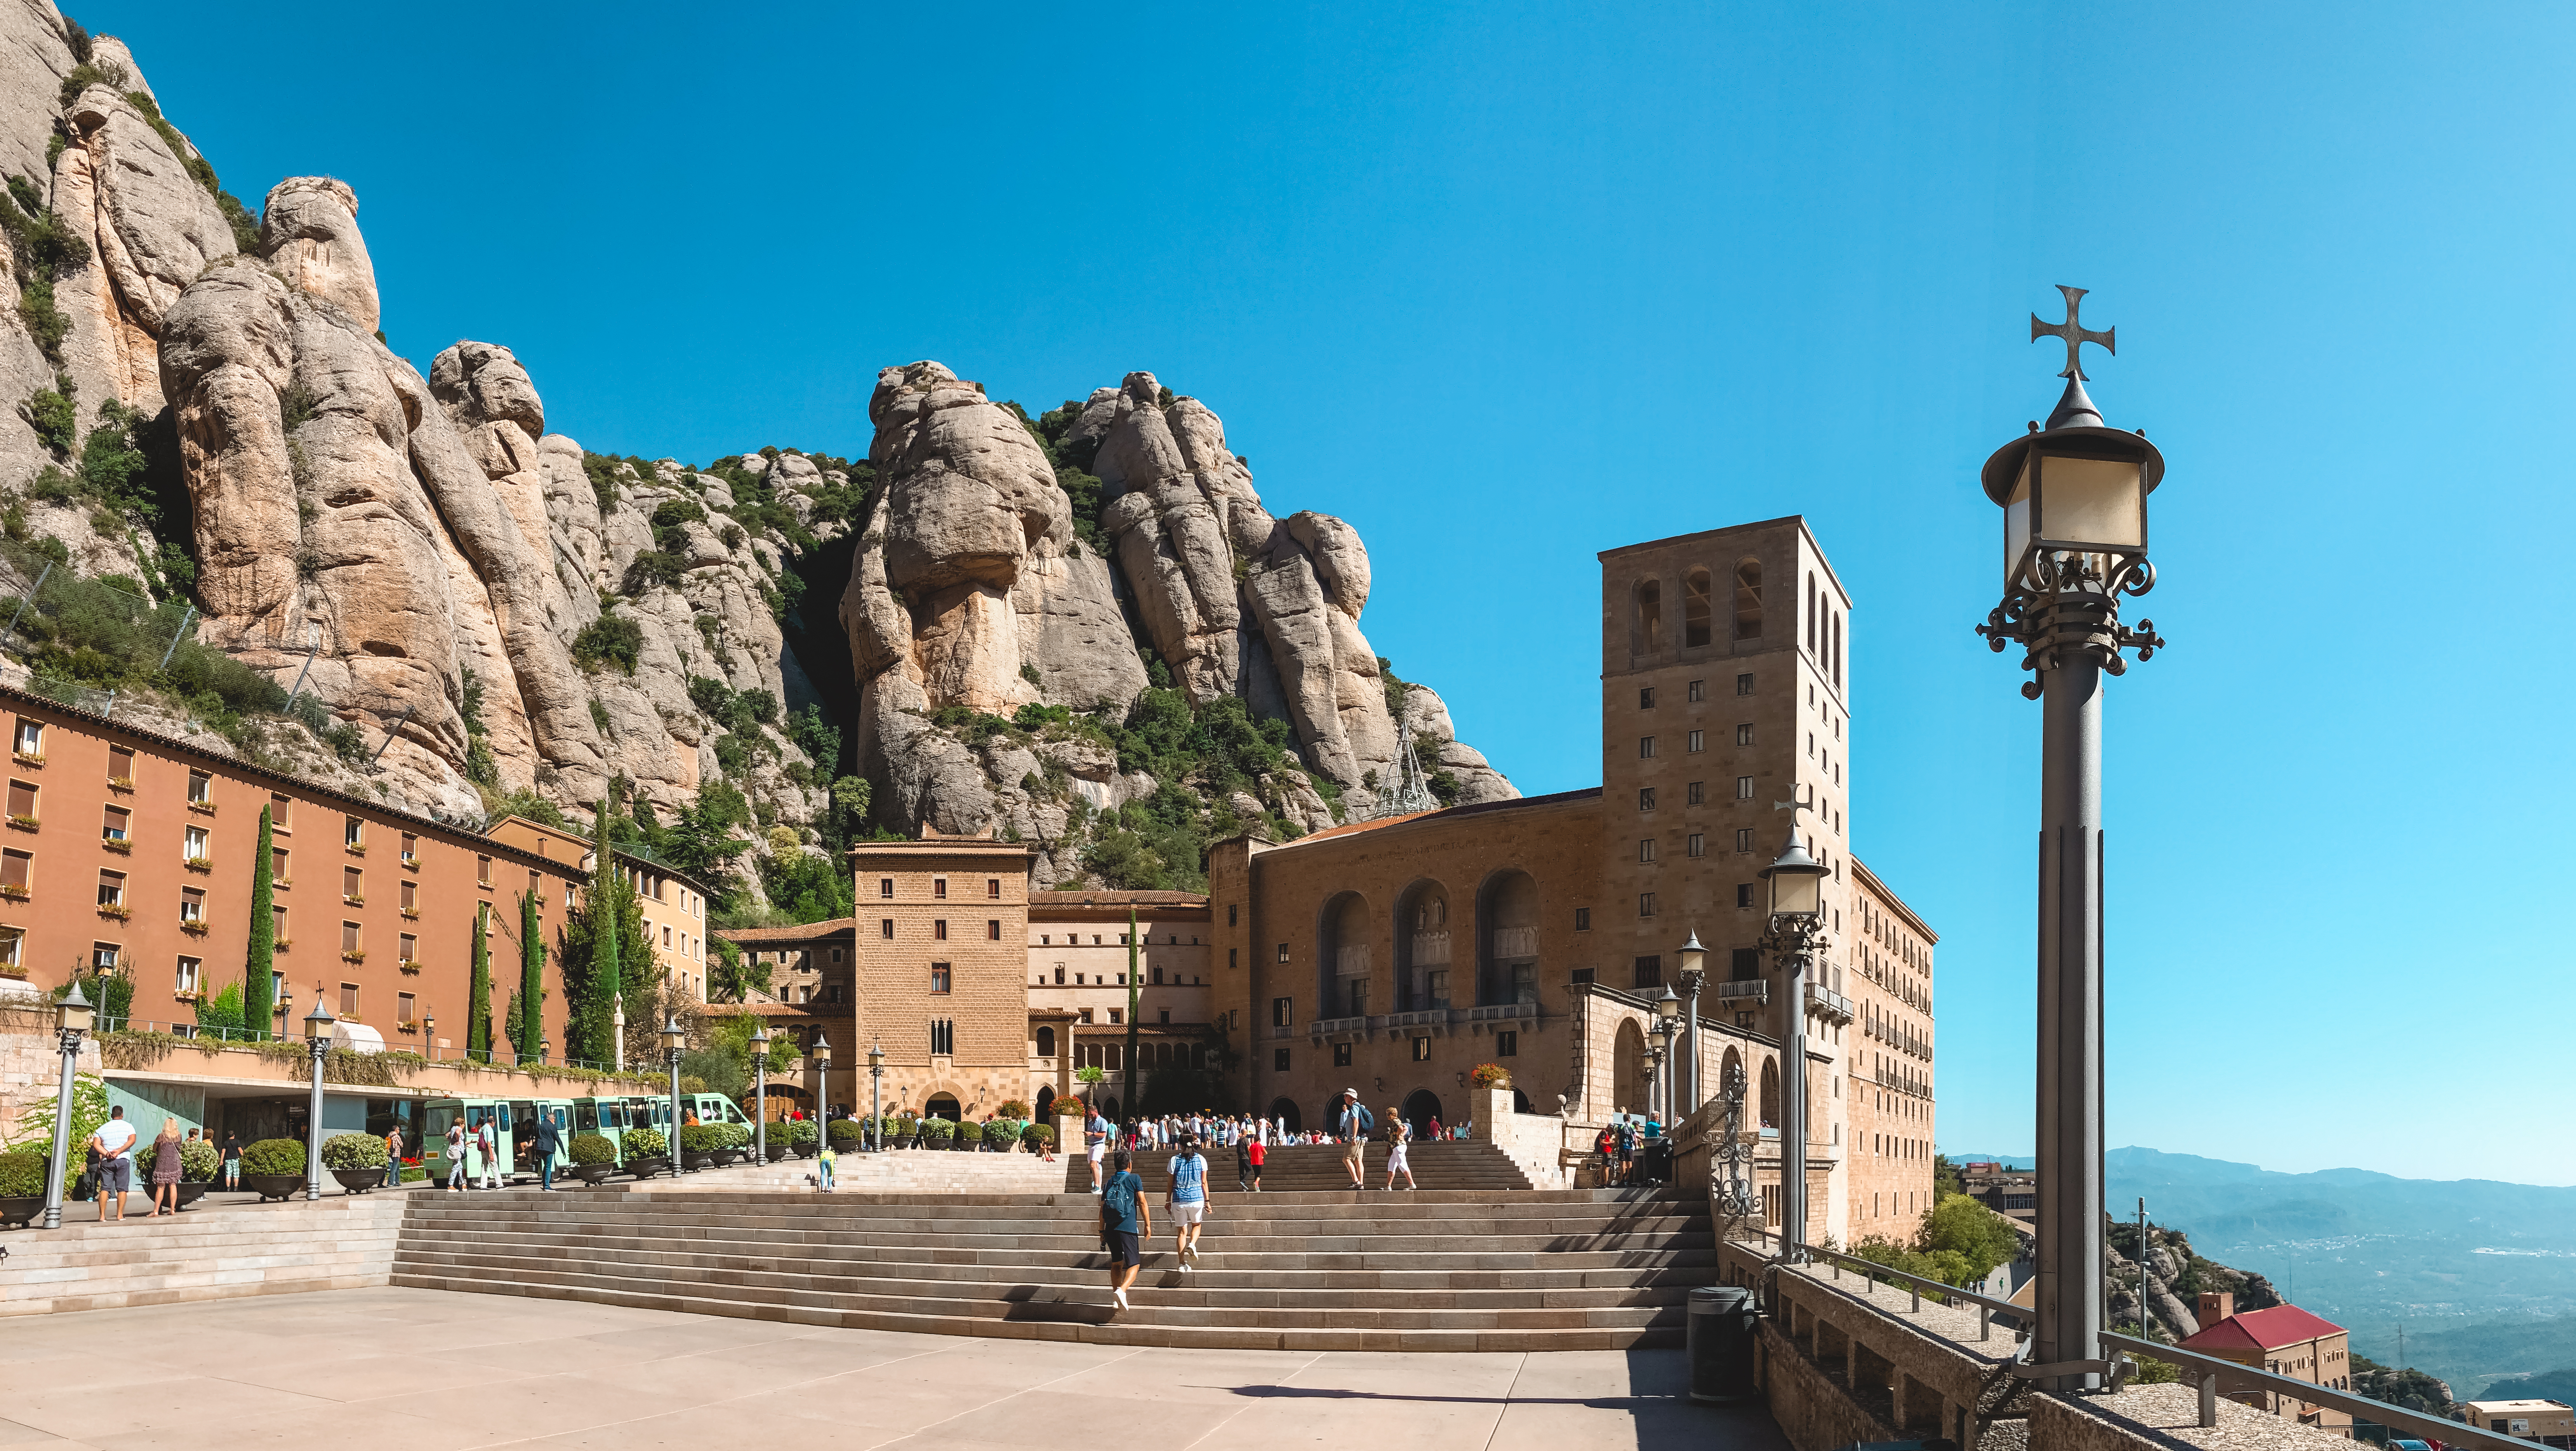 Montserrat monastery on mountain